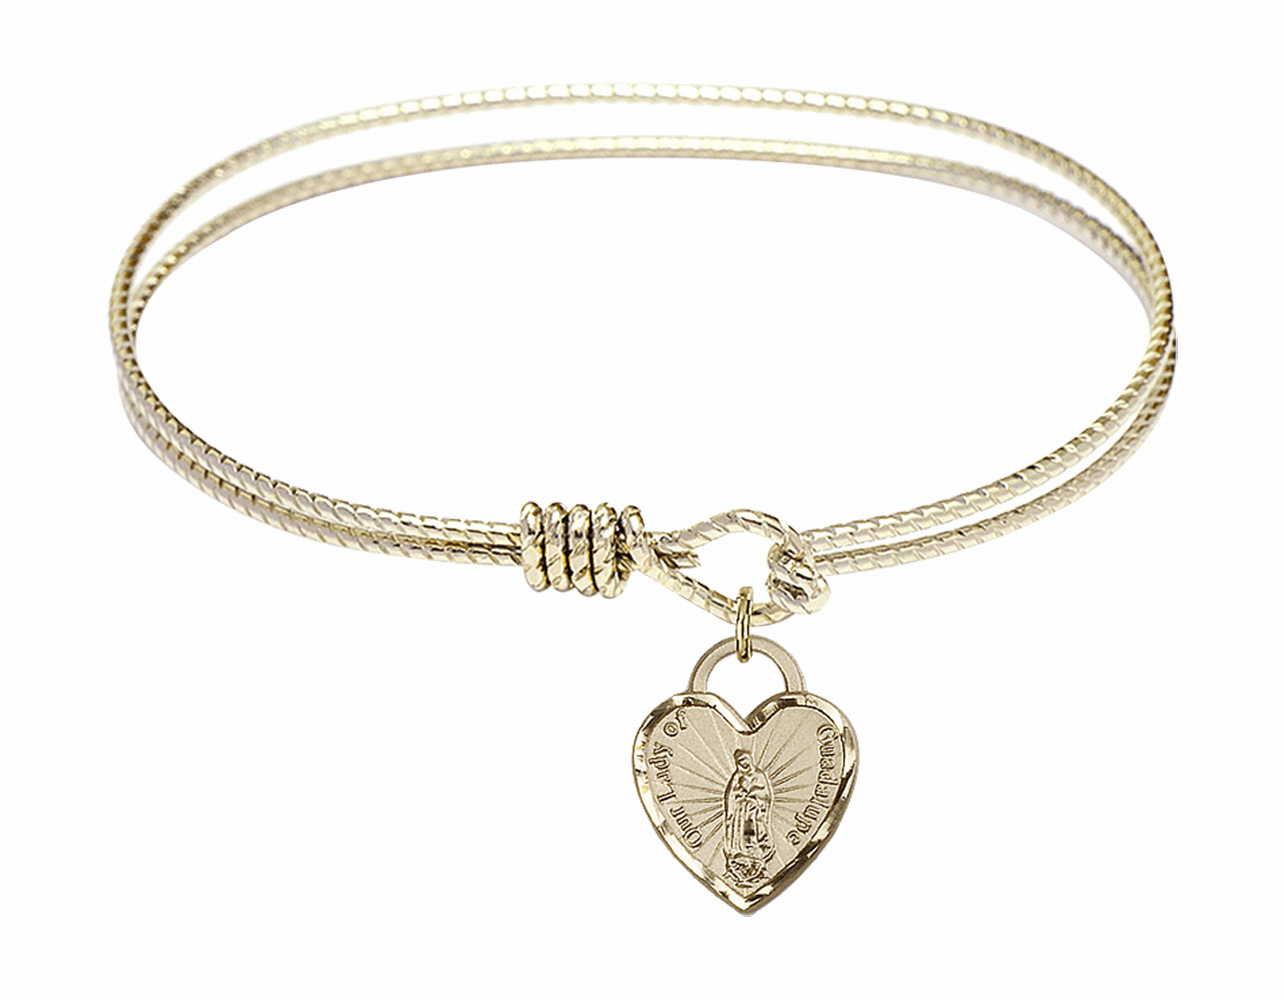 Round Twist Eye Hook Bangle Bracelet w/Our Lady of Guadalupe Heart Charm by Bliss Mfg